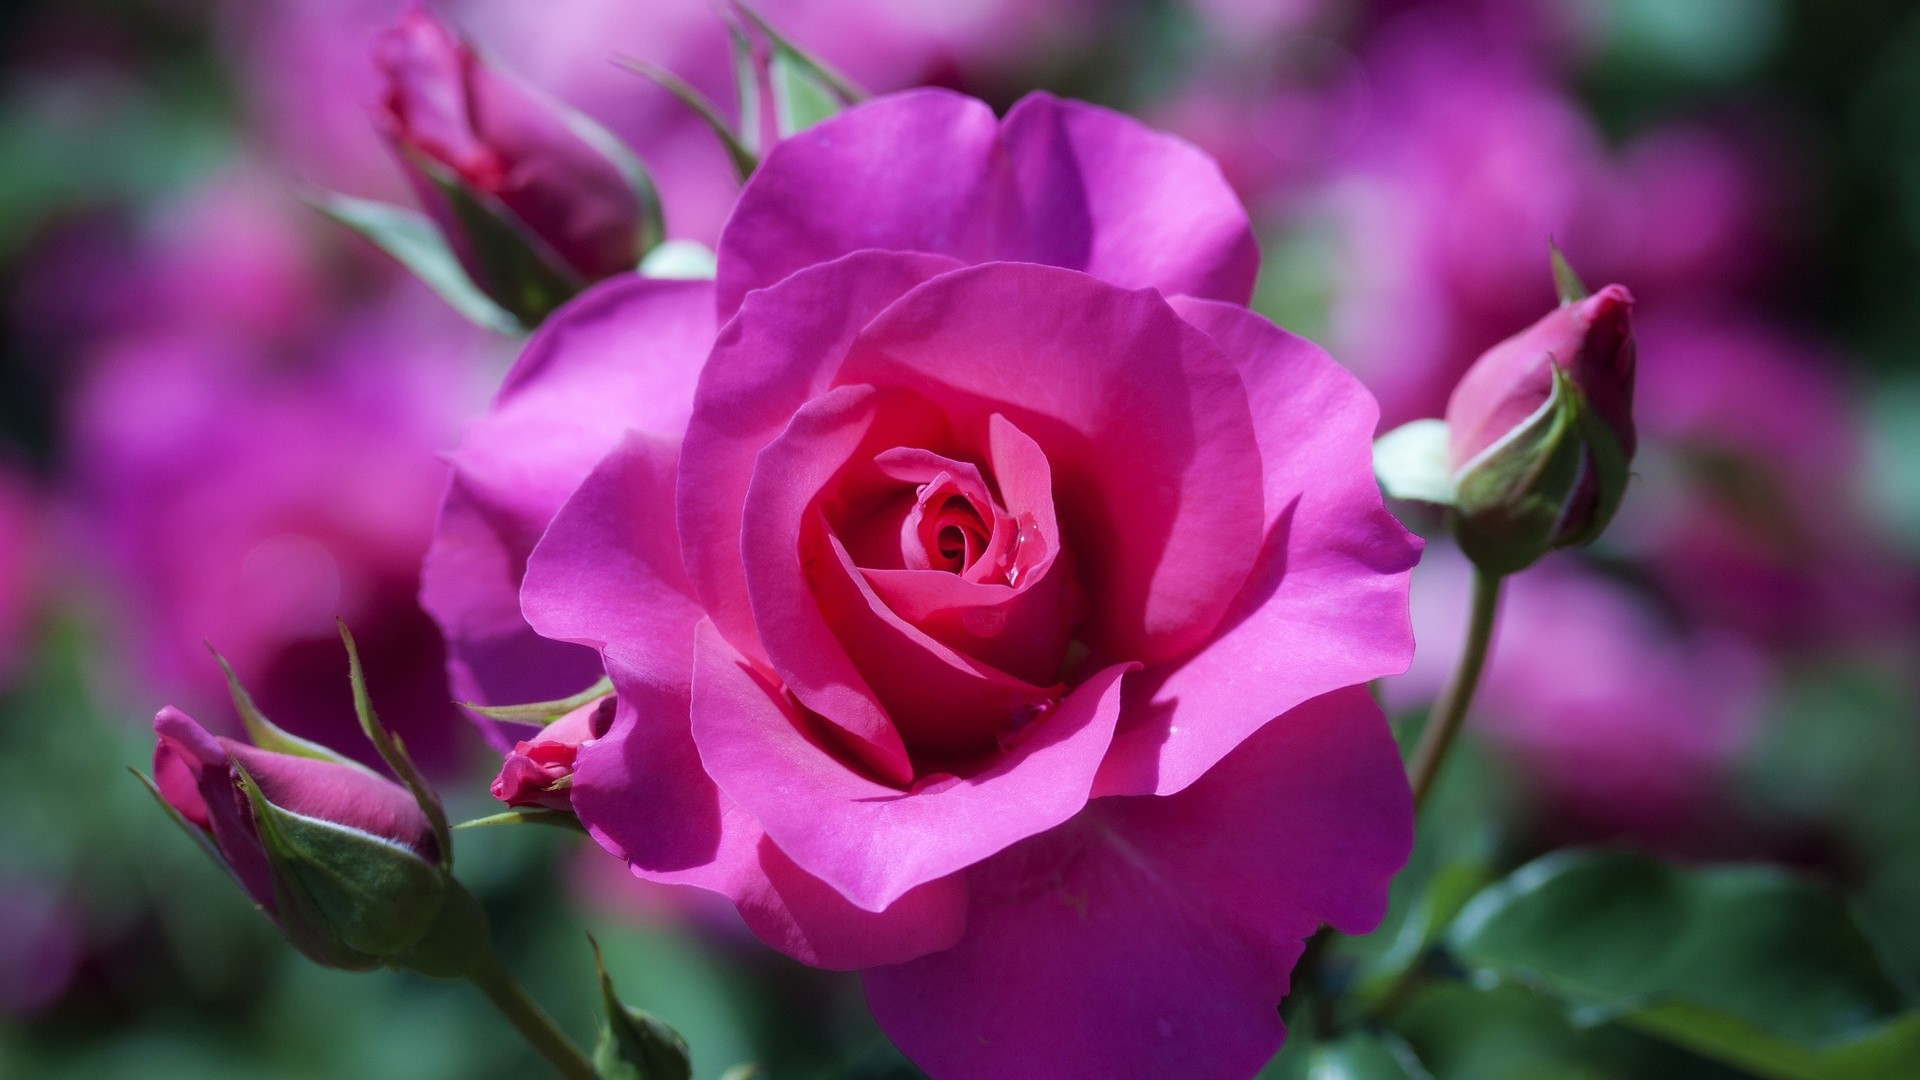 Pink Rose Wallpaper For Desktop Free